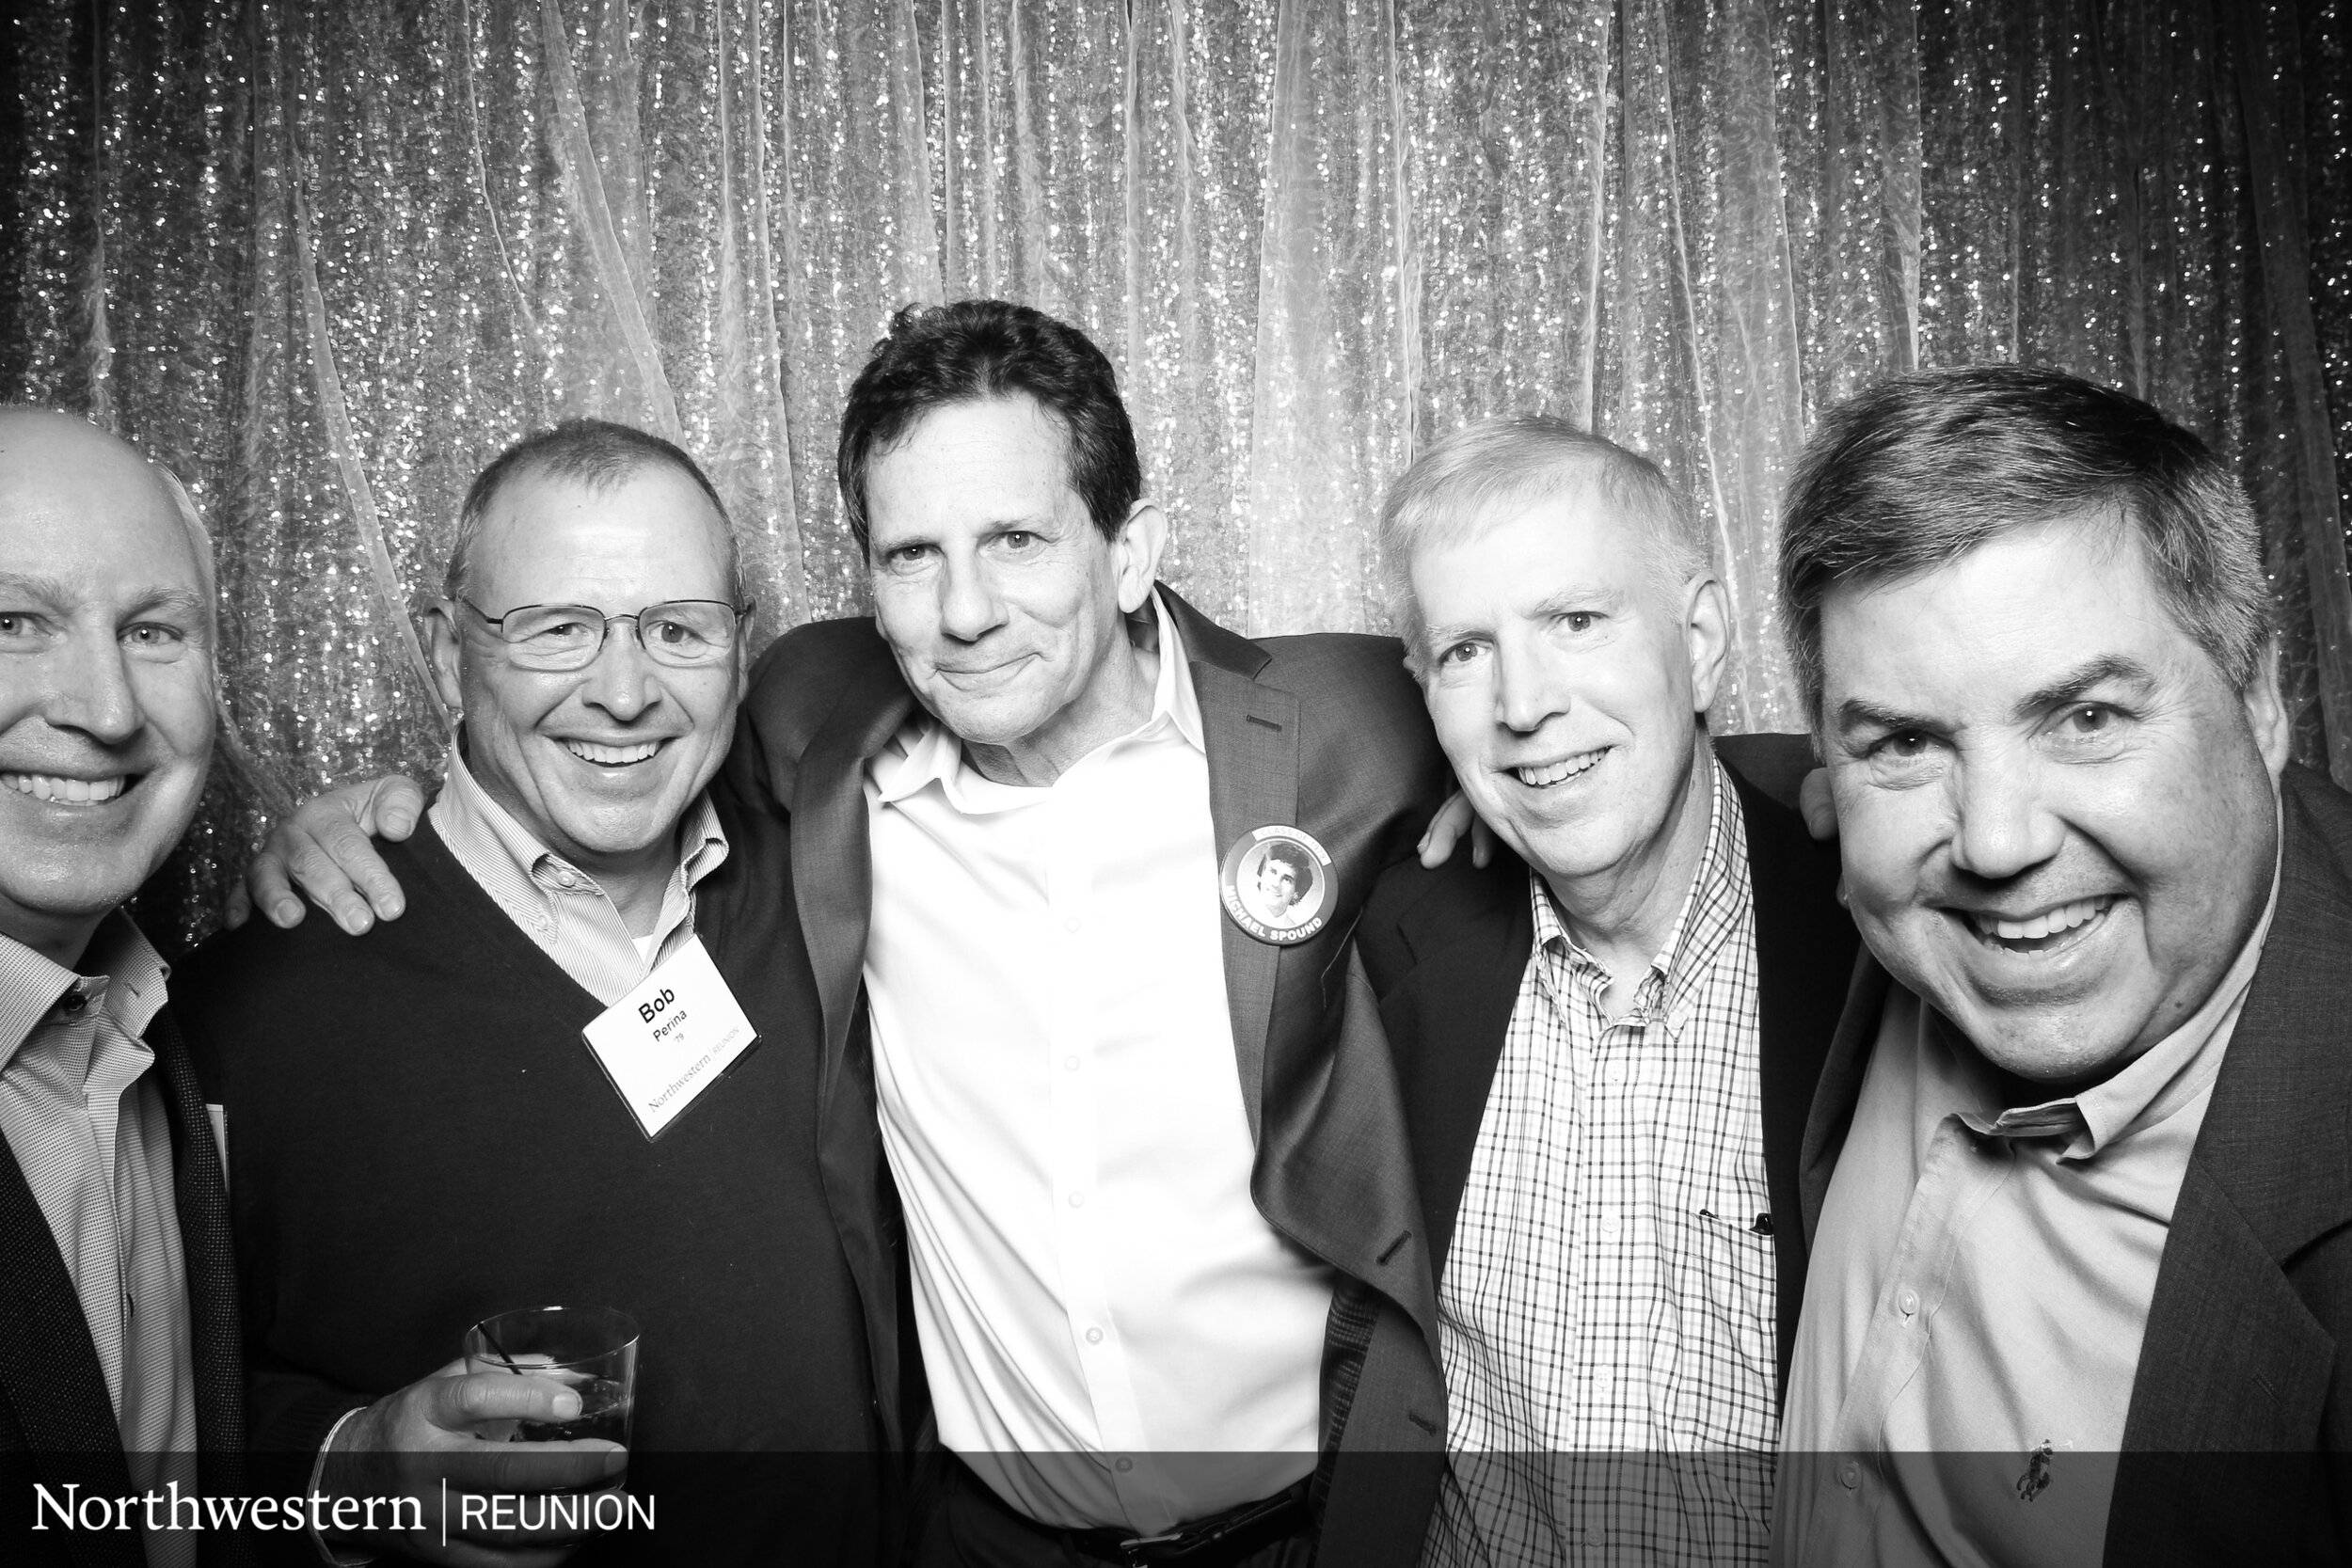 Class_Reunion_Photo_Booth_Chicago_17.jpg